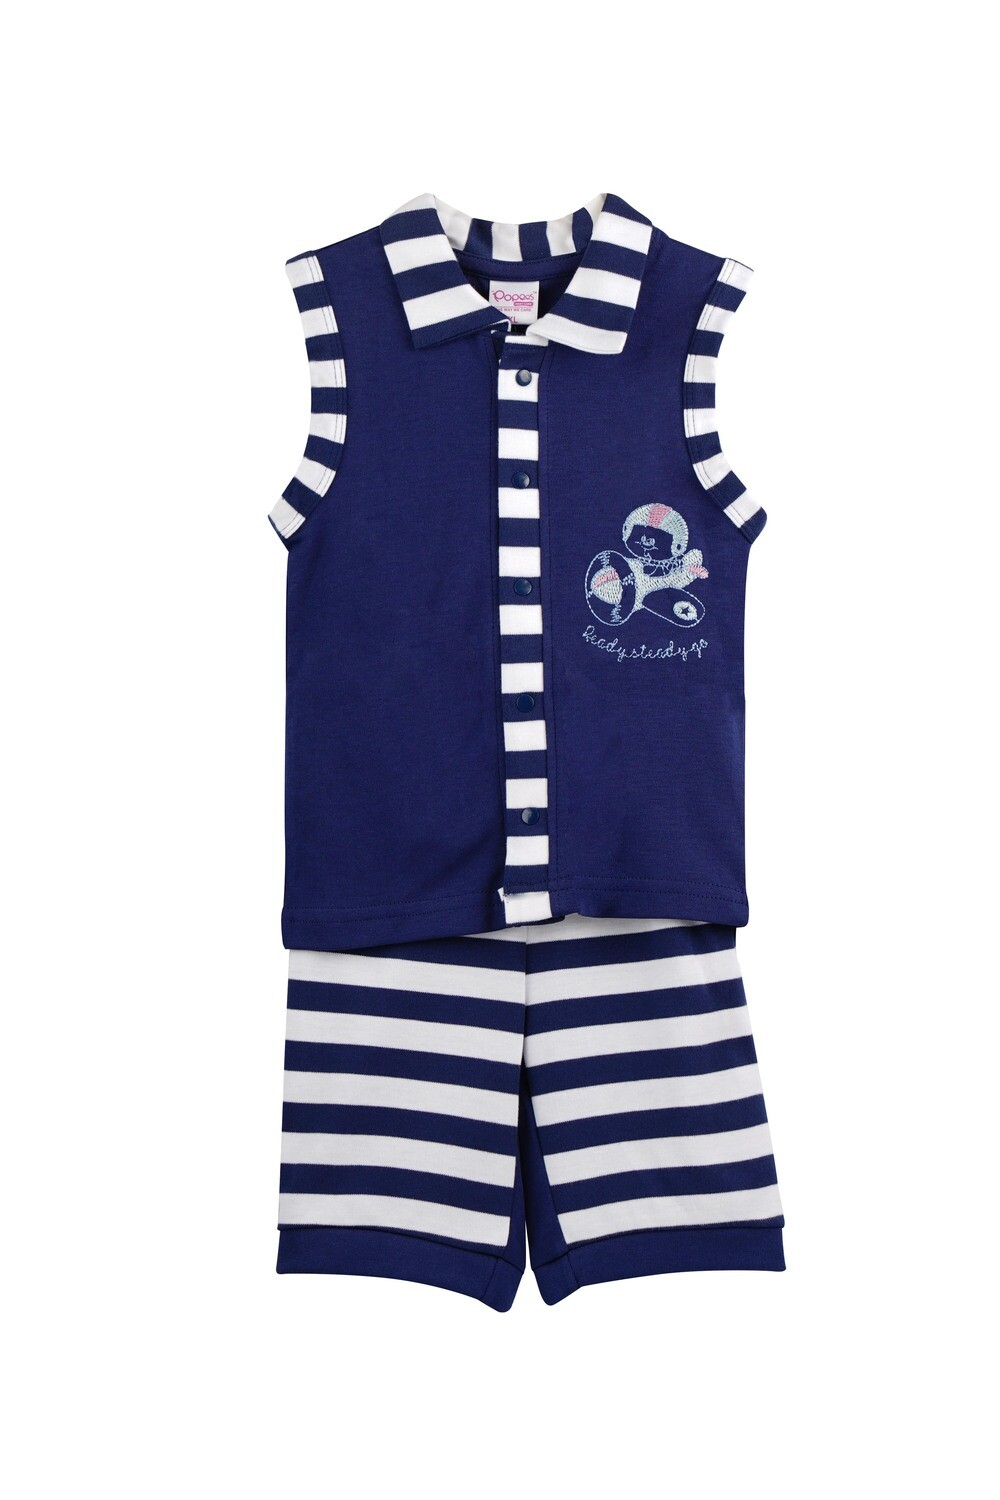 Popees Chitwan Navy Blue for Baby Boys (XL: 18-24 Months)